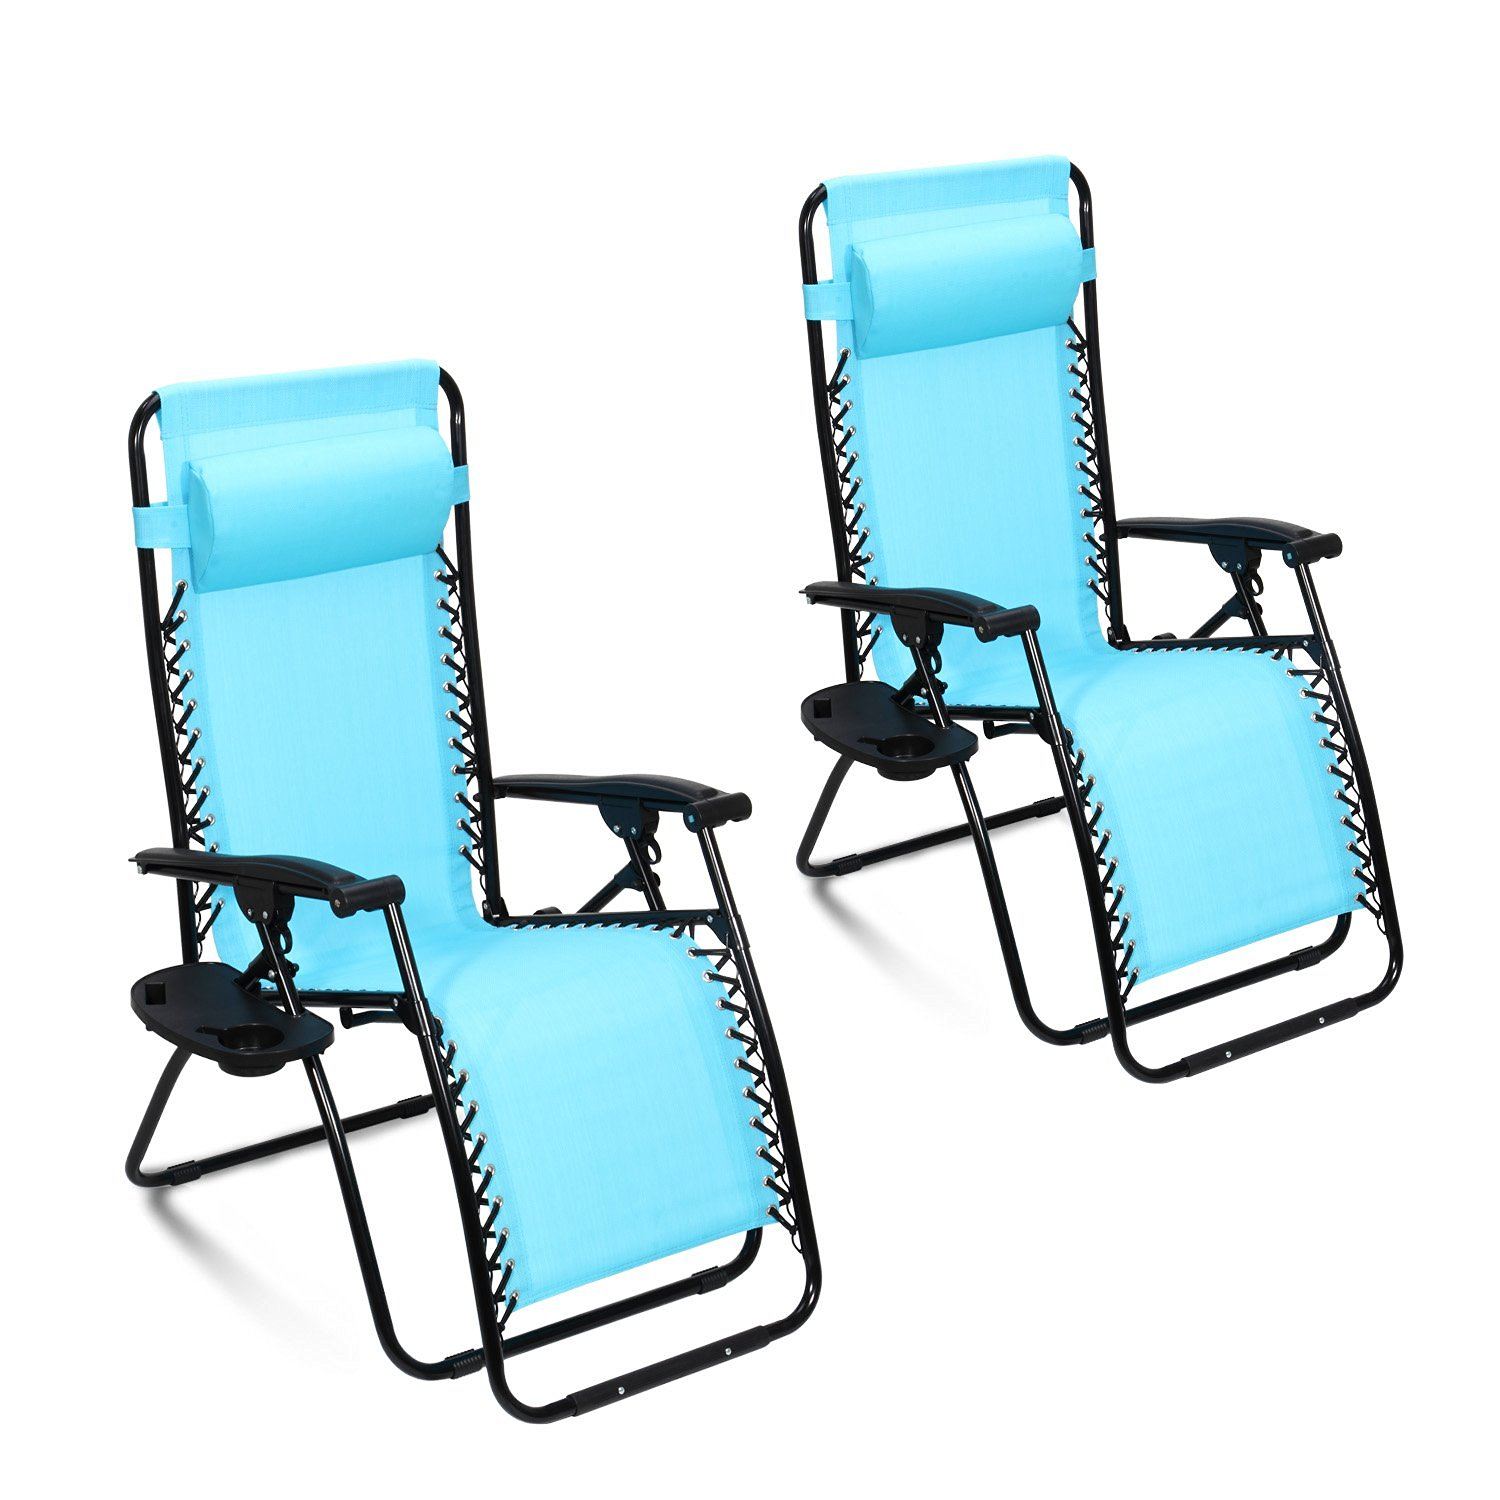 oversized gravity chair cover rentals harrisburg pa top 10 best zero reviews - find yours [2019]